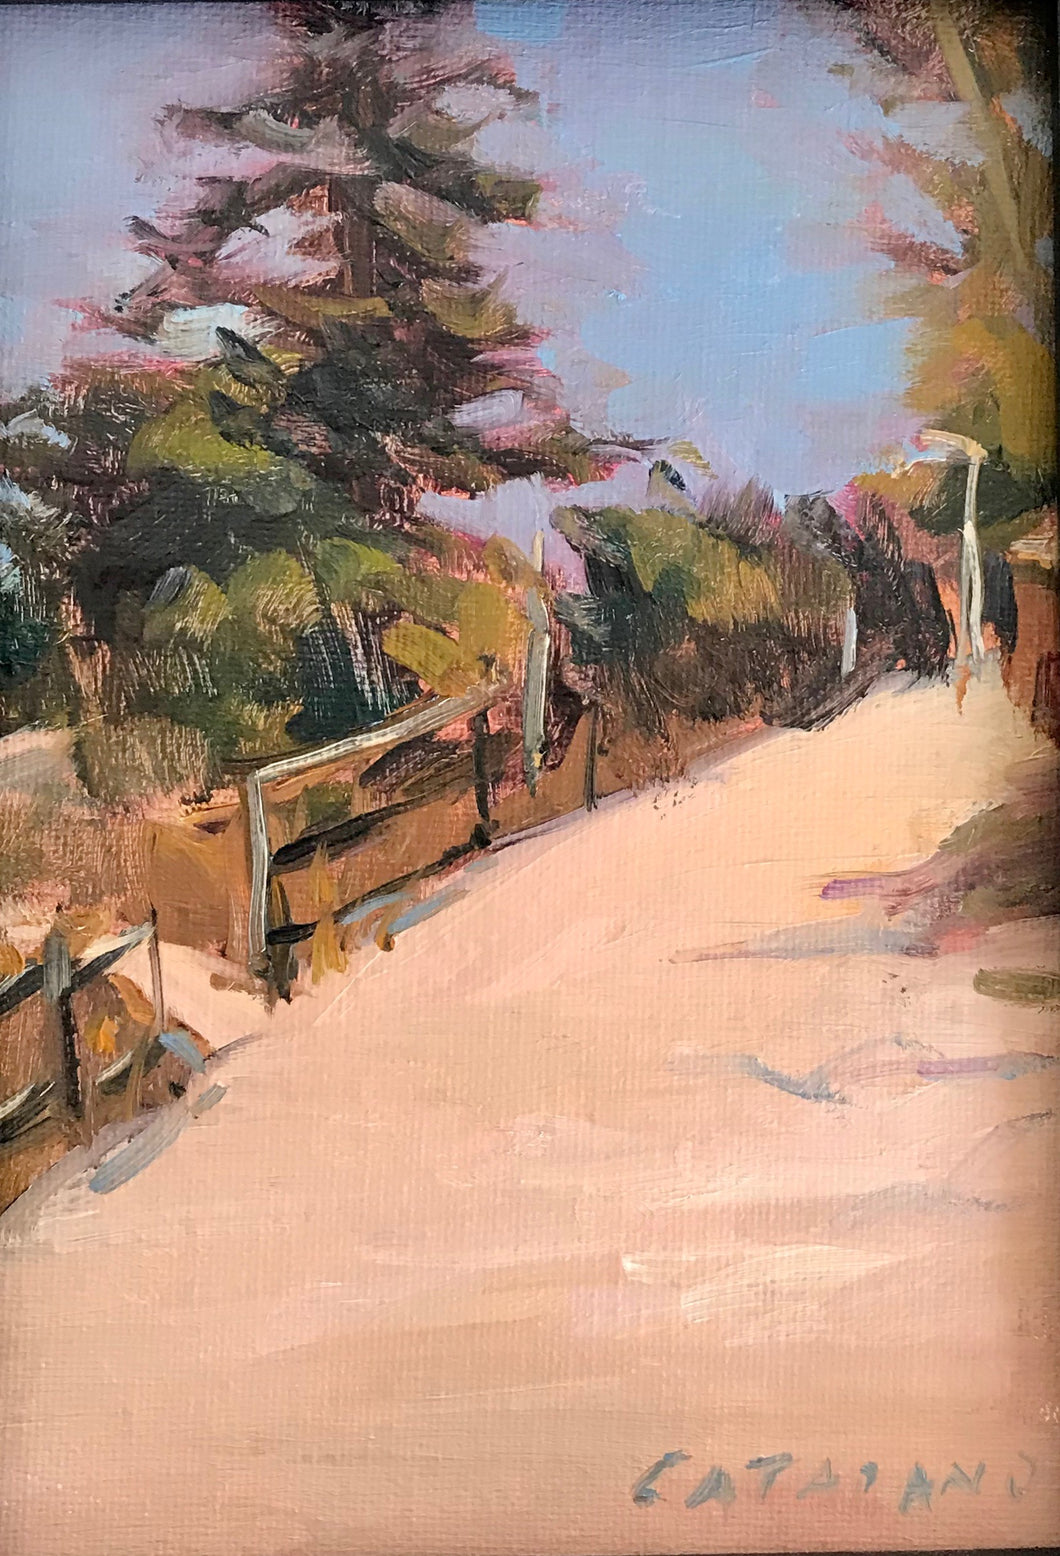 The Way Home  | 5x7 | Original Oil Painting